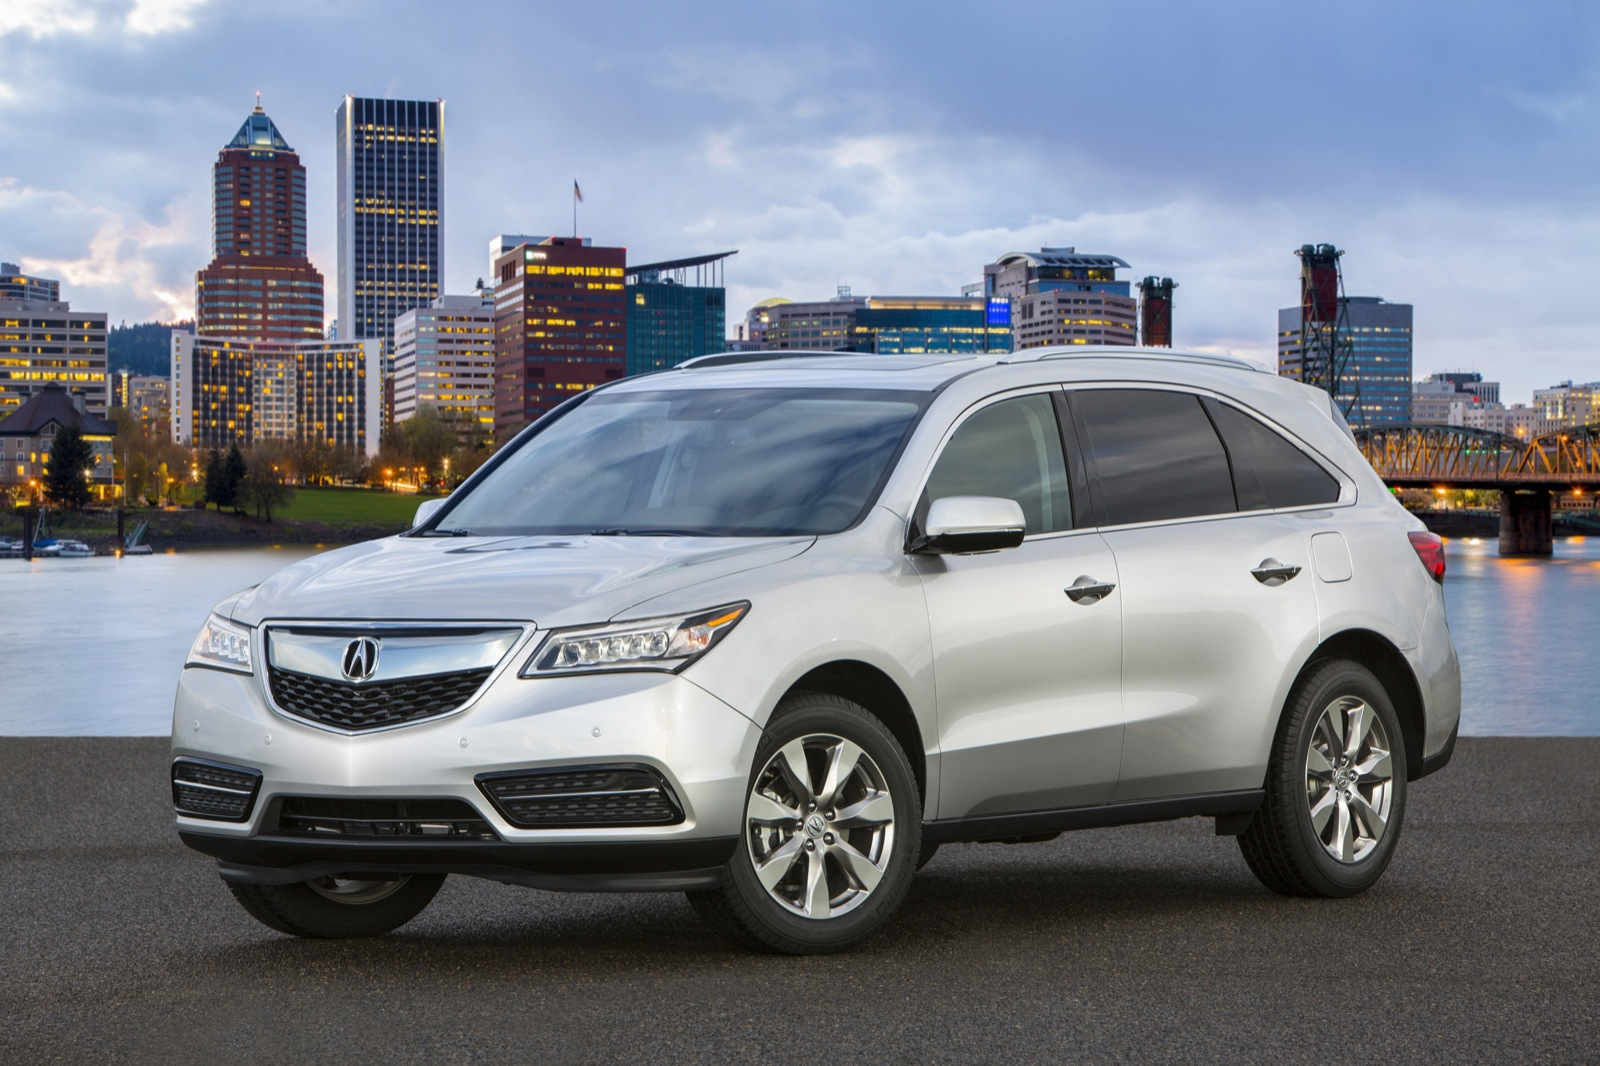 2014 Acura MDX Review